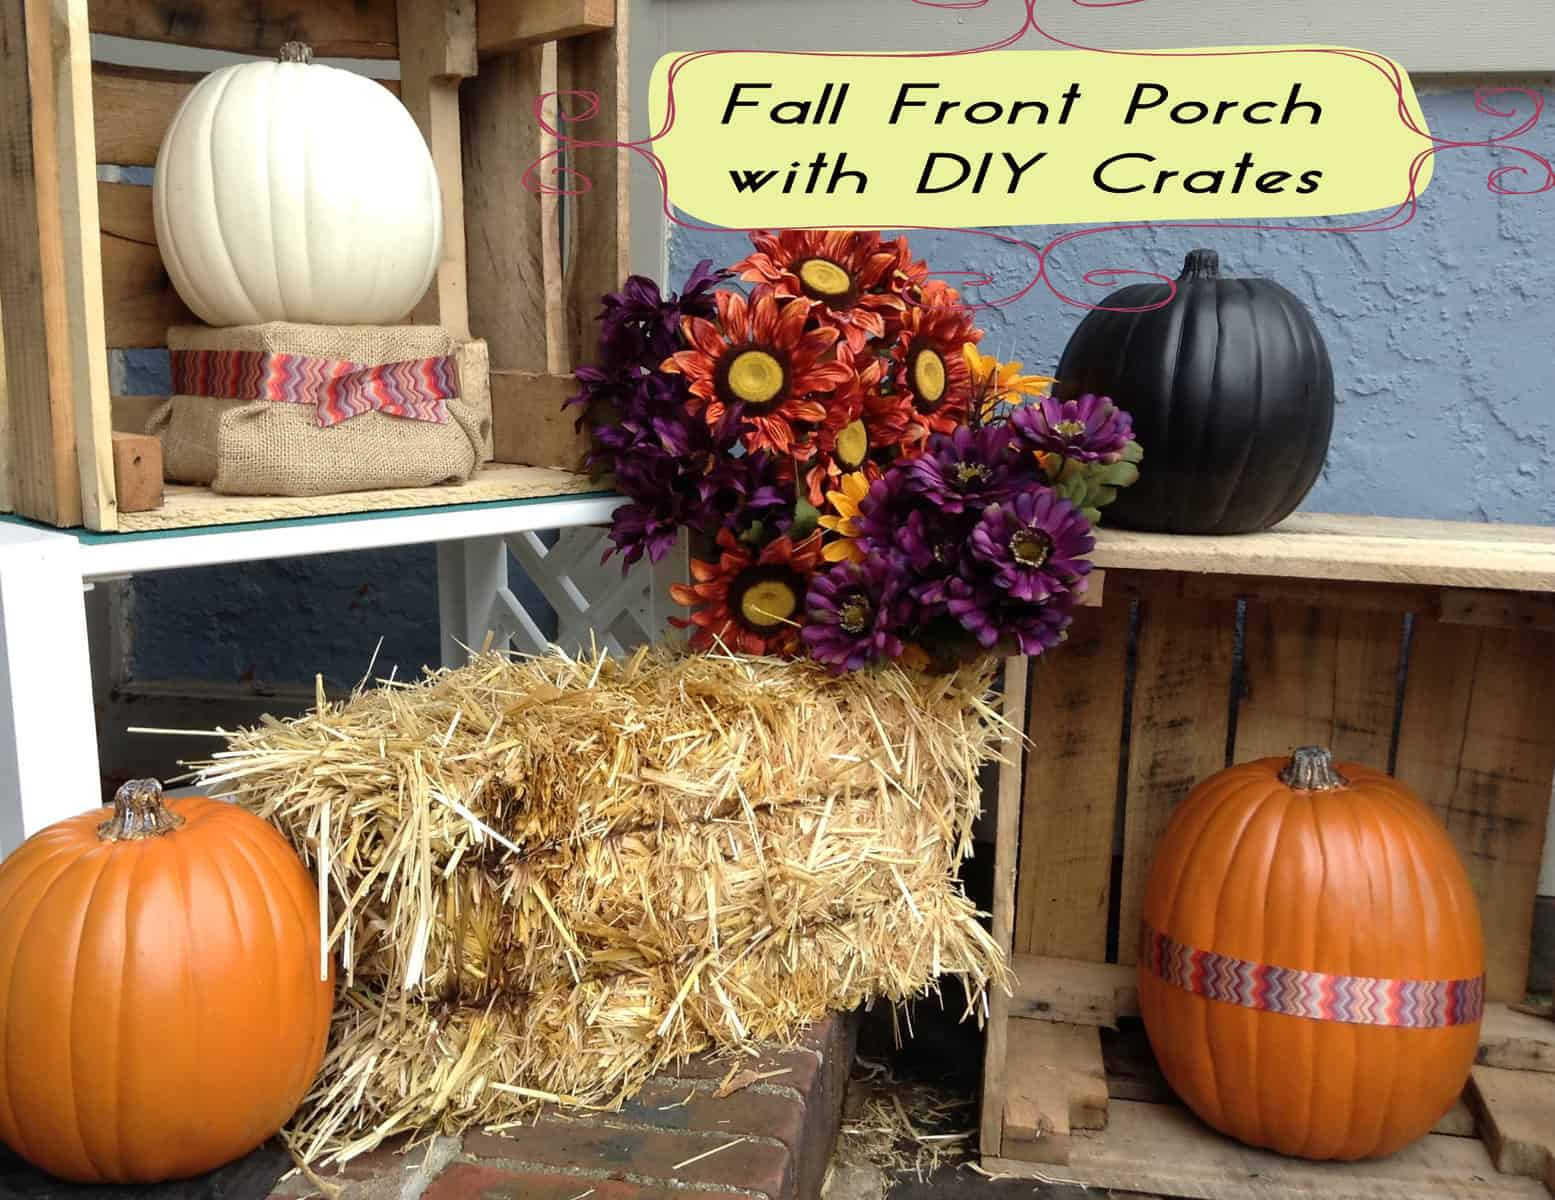 Home Decorating Ideas Pinterest Fall Front Porch With Diy Crates For Free Heartwork